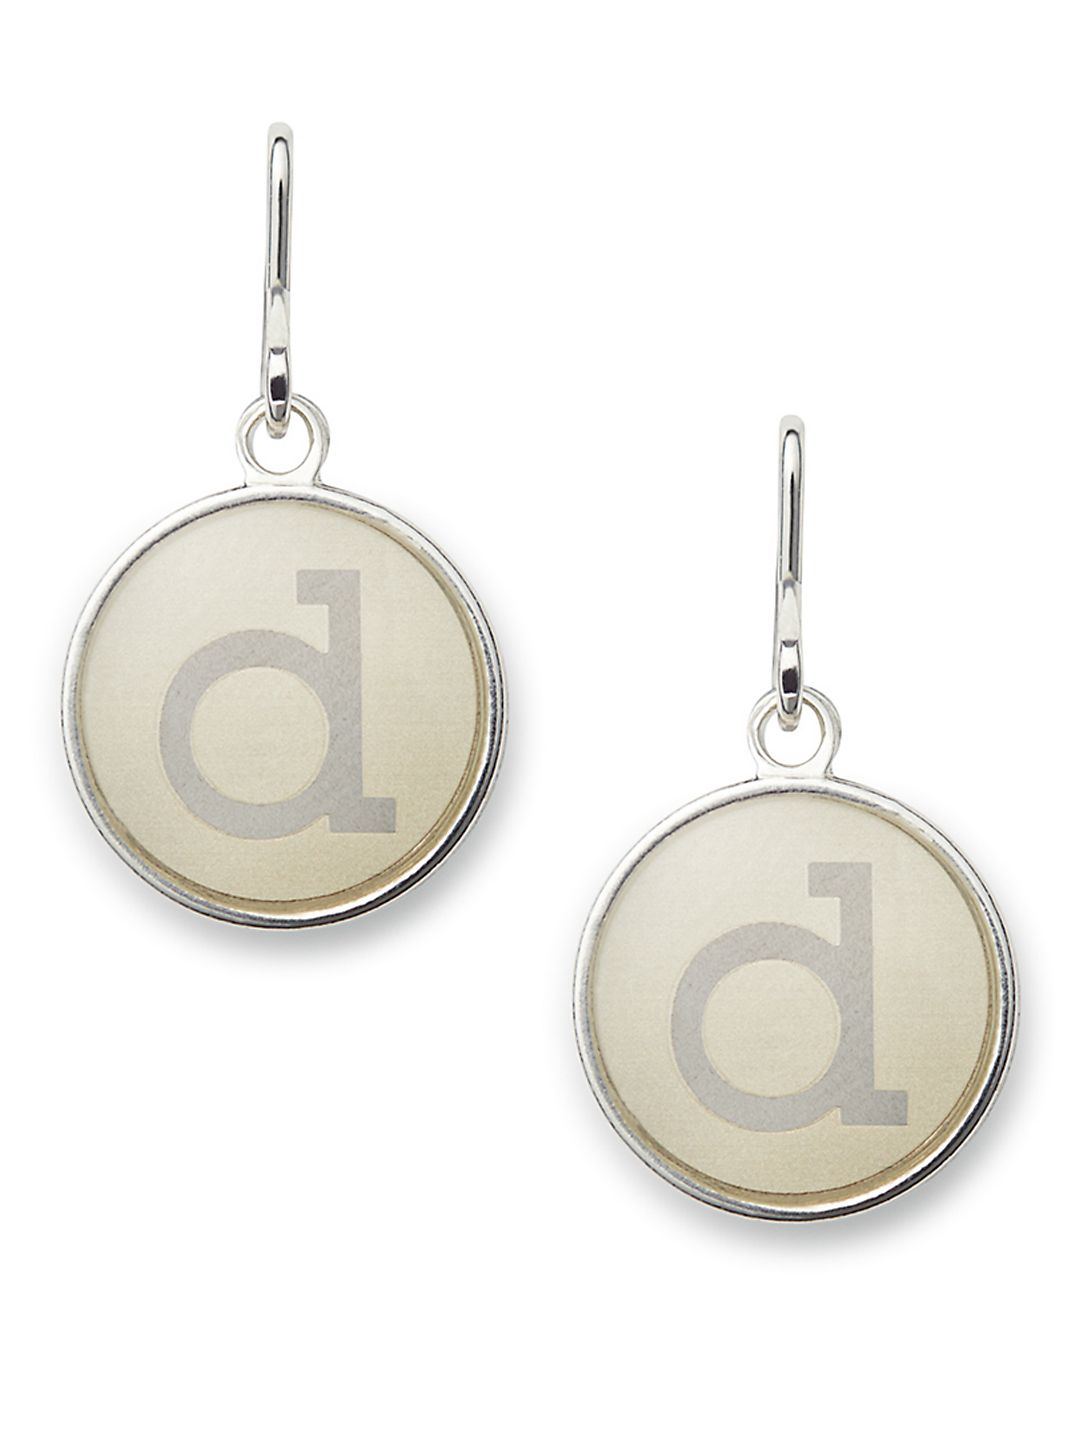 Initial Necklace Charm